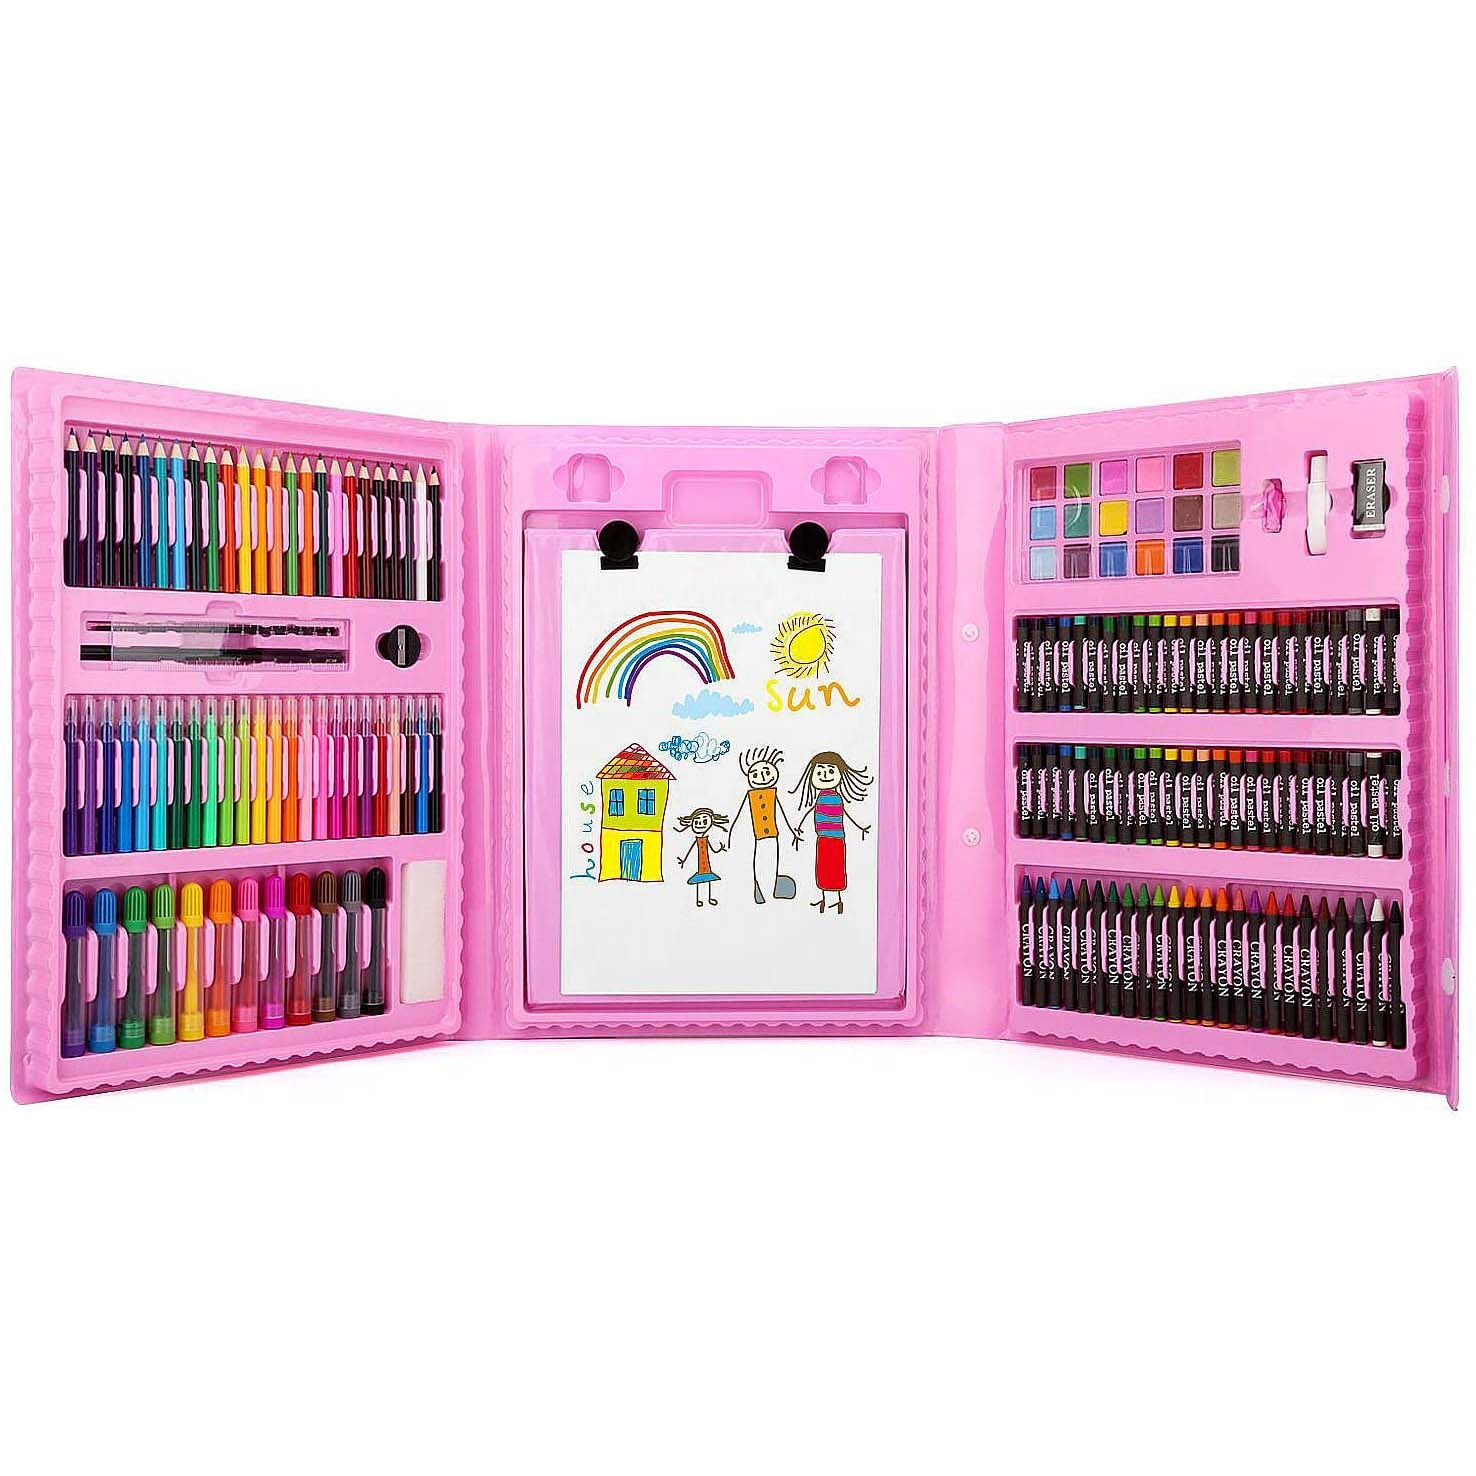 176 Piece High Quality Non-toxic PVC Stationery Kids Drawing Art Set for kids super Artist Tool Kit Gift